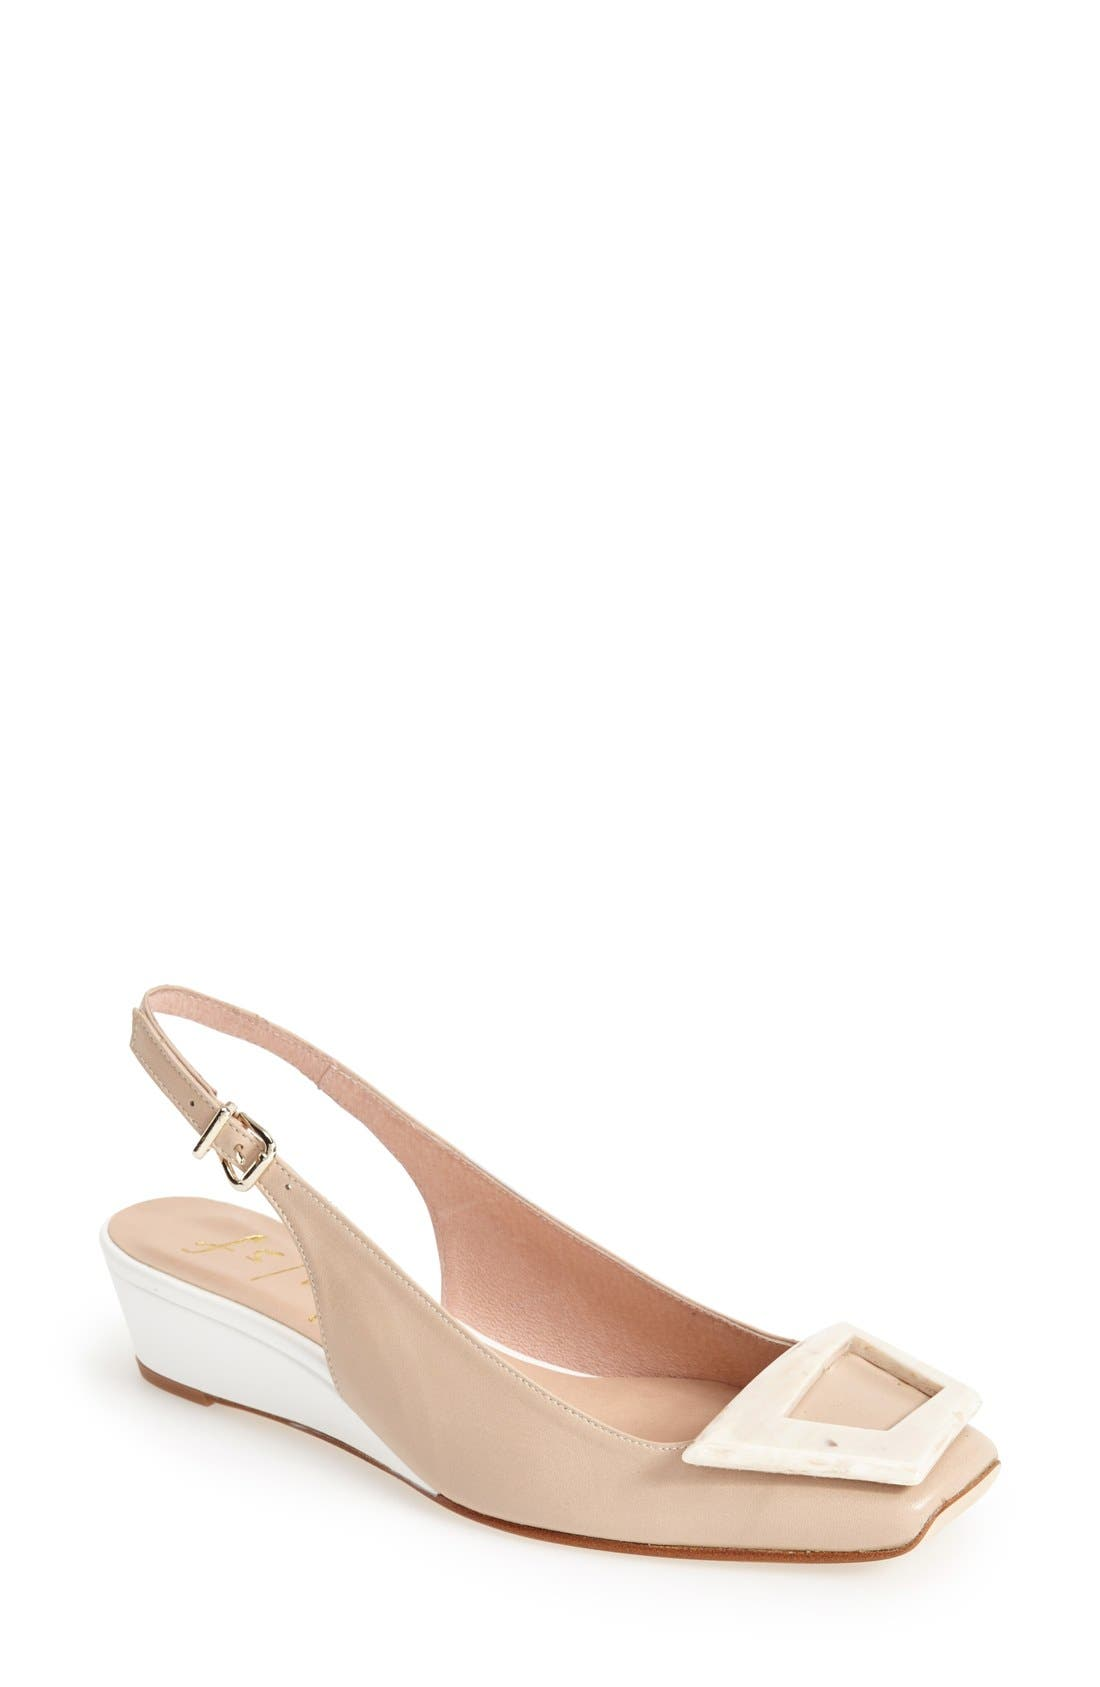 Alternate Image 1 Selected - French Sole 'Noter' Slingback Wedge Pump (Women)